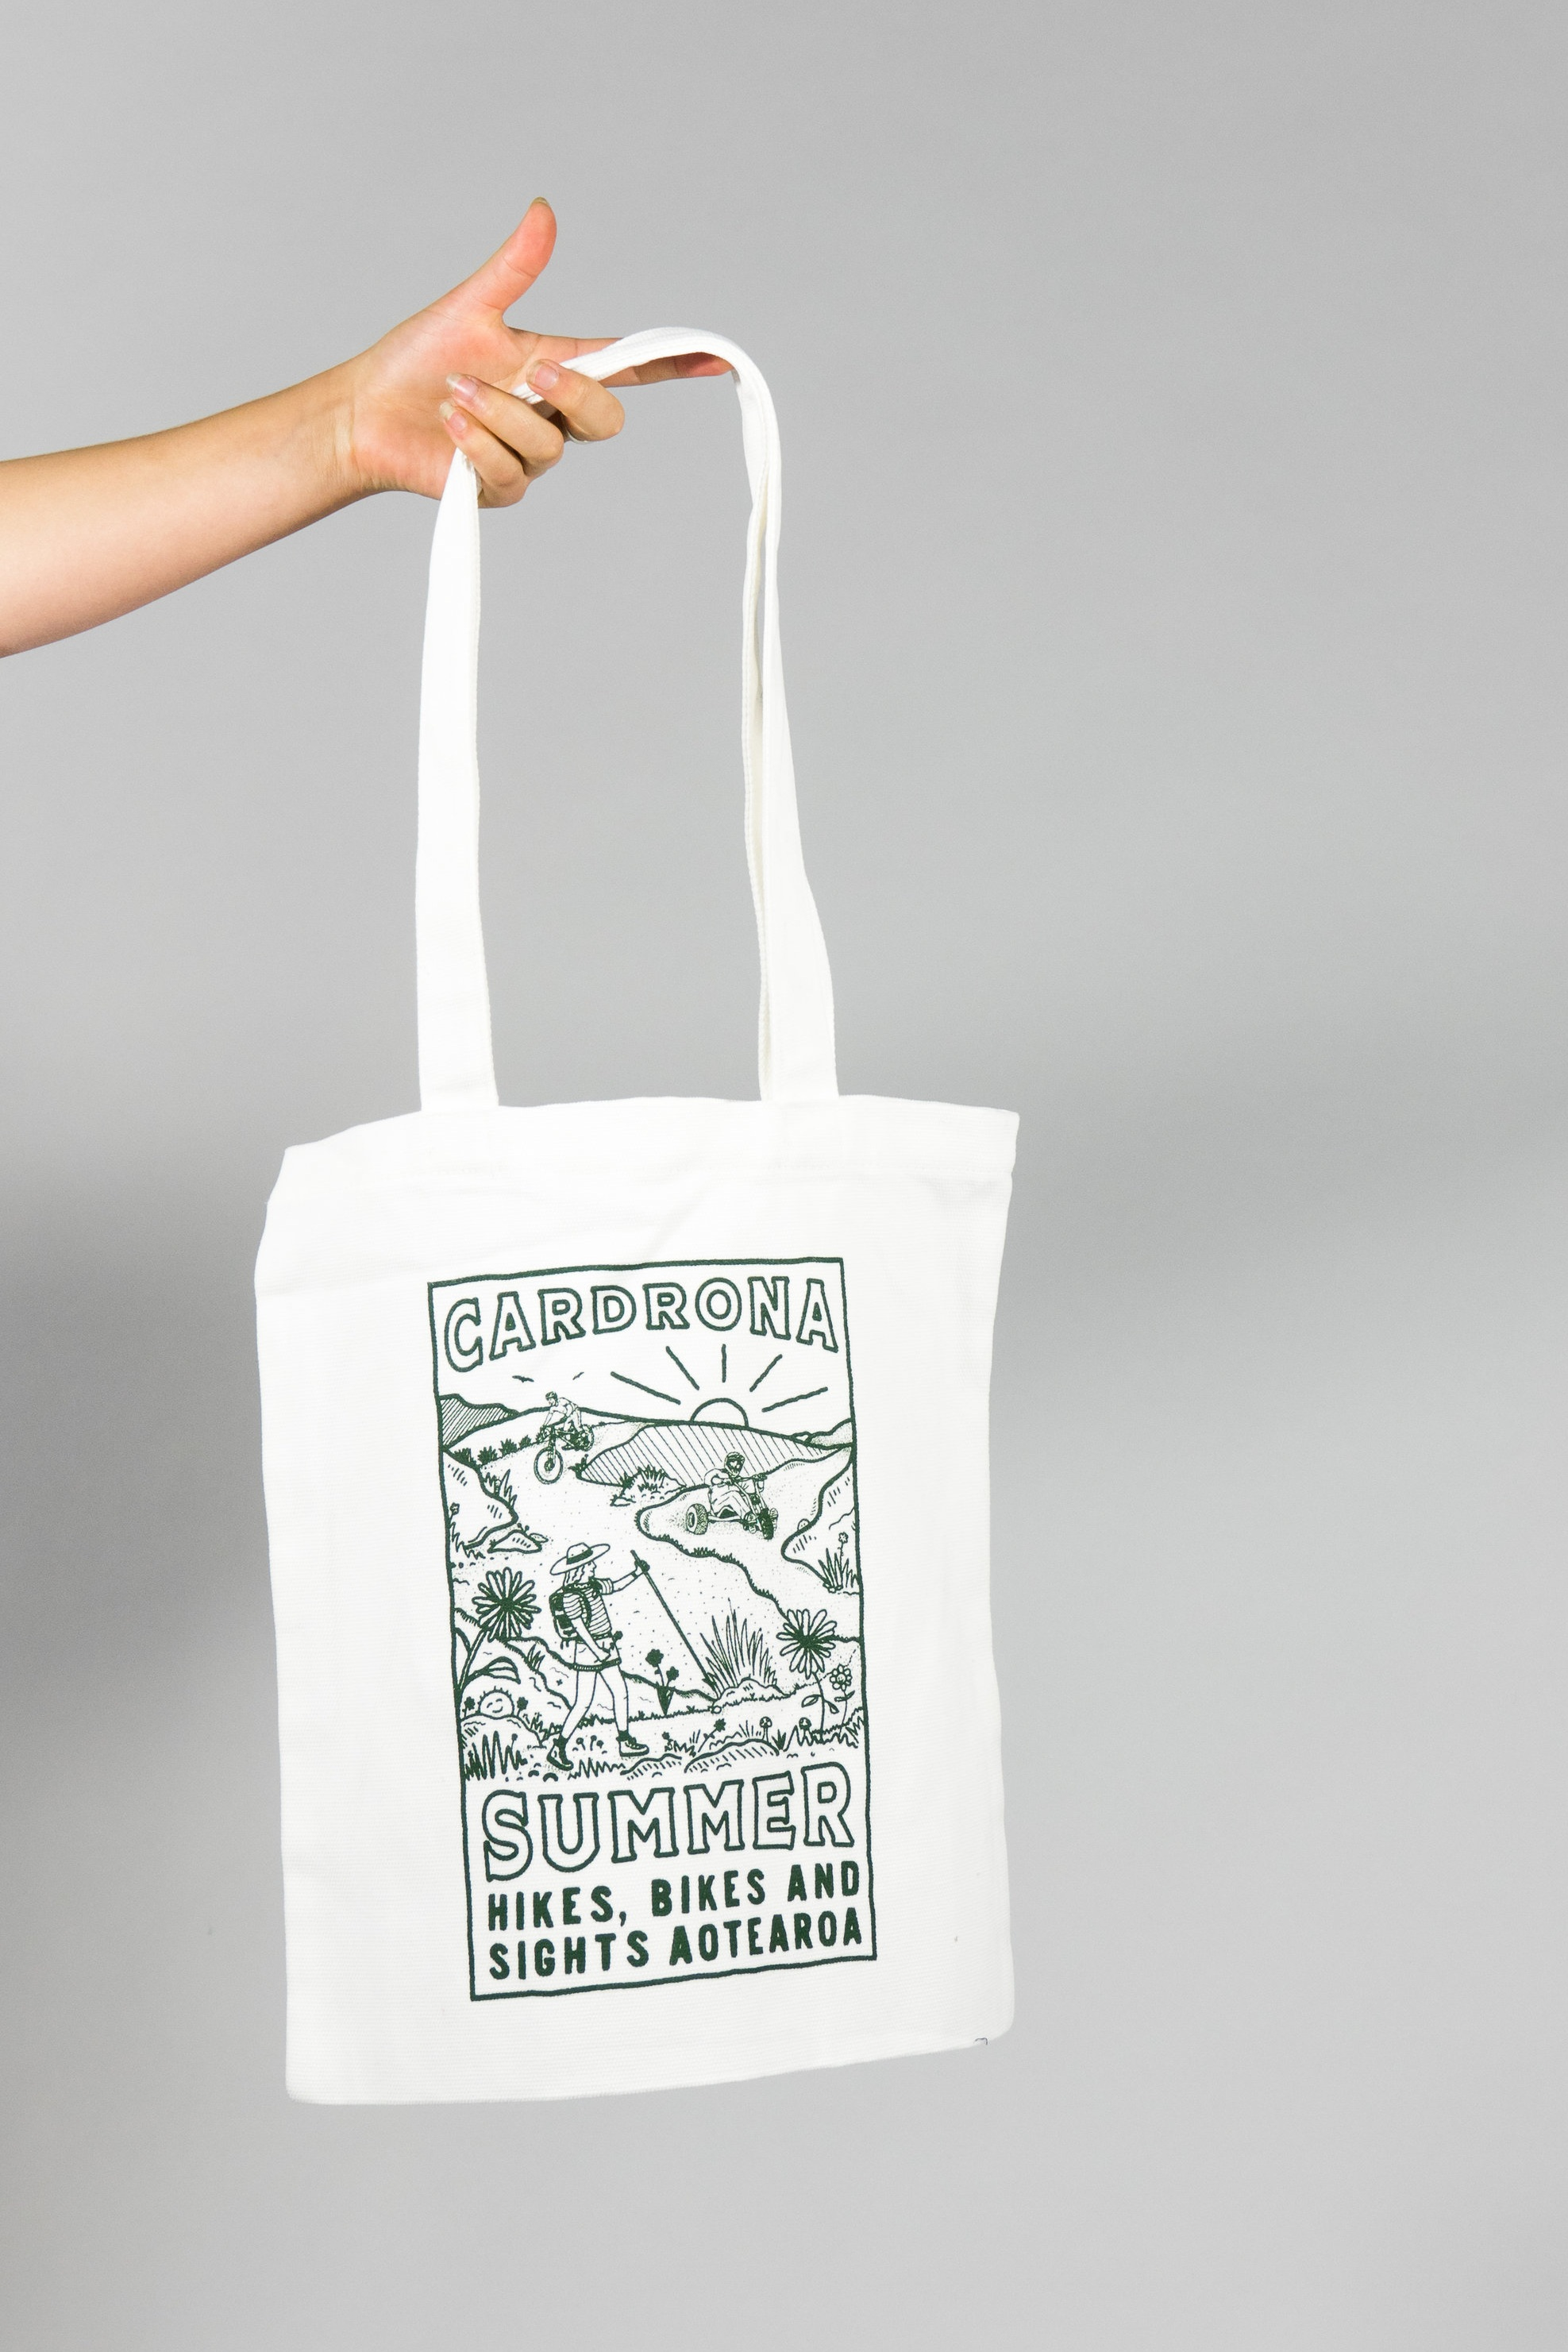 'Hikes, Bikes & Sights' tote bag design. 100% cotton canvas, mid weight, 320 GSM.